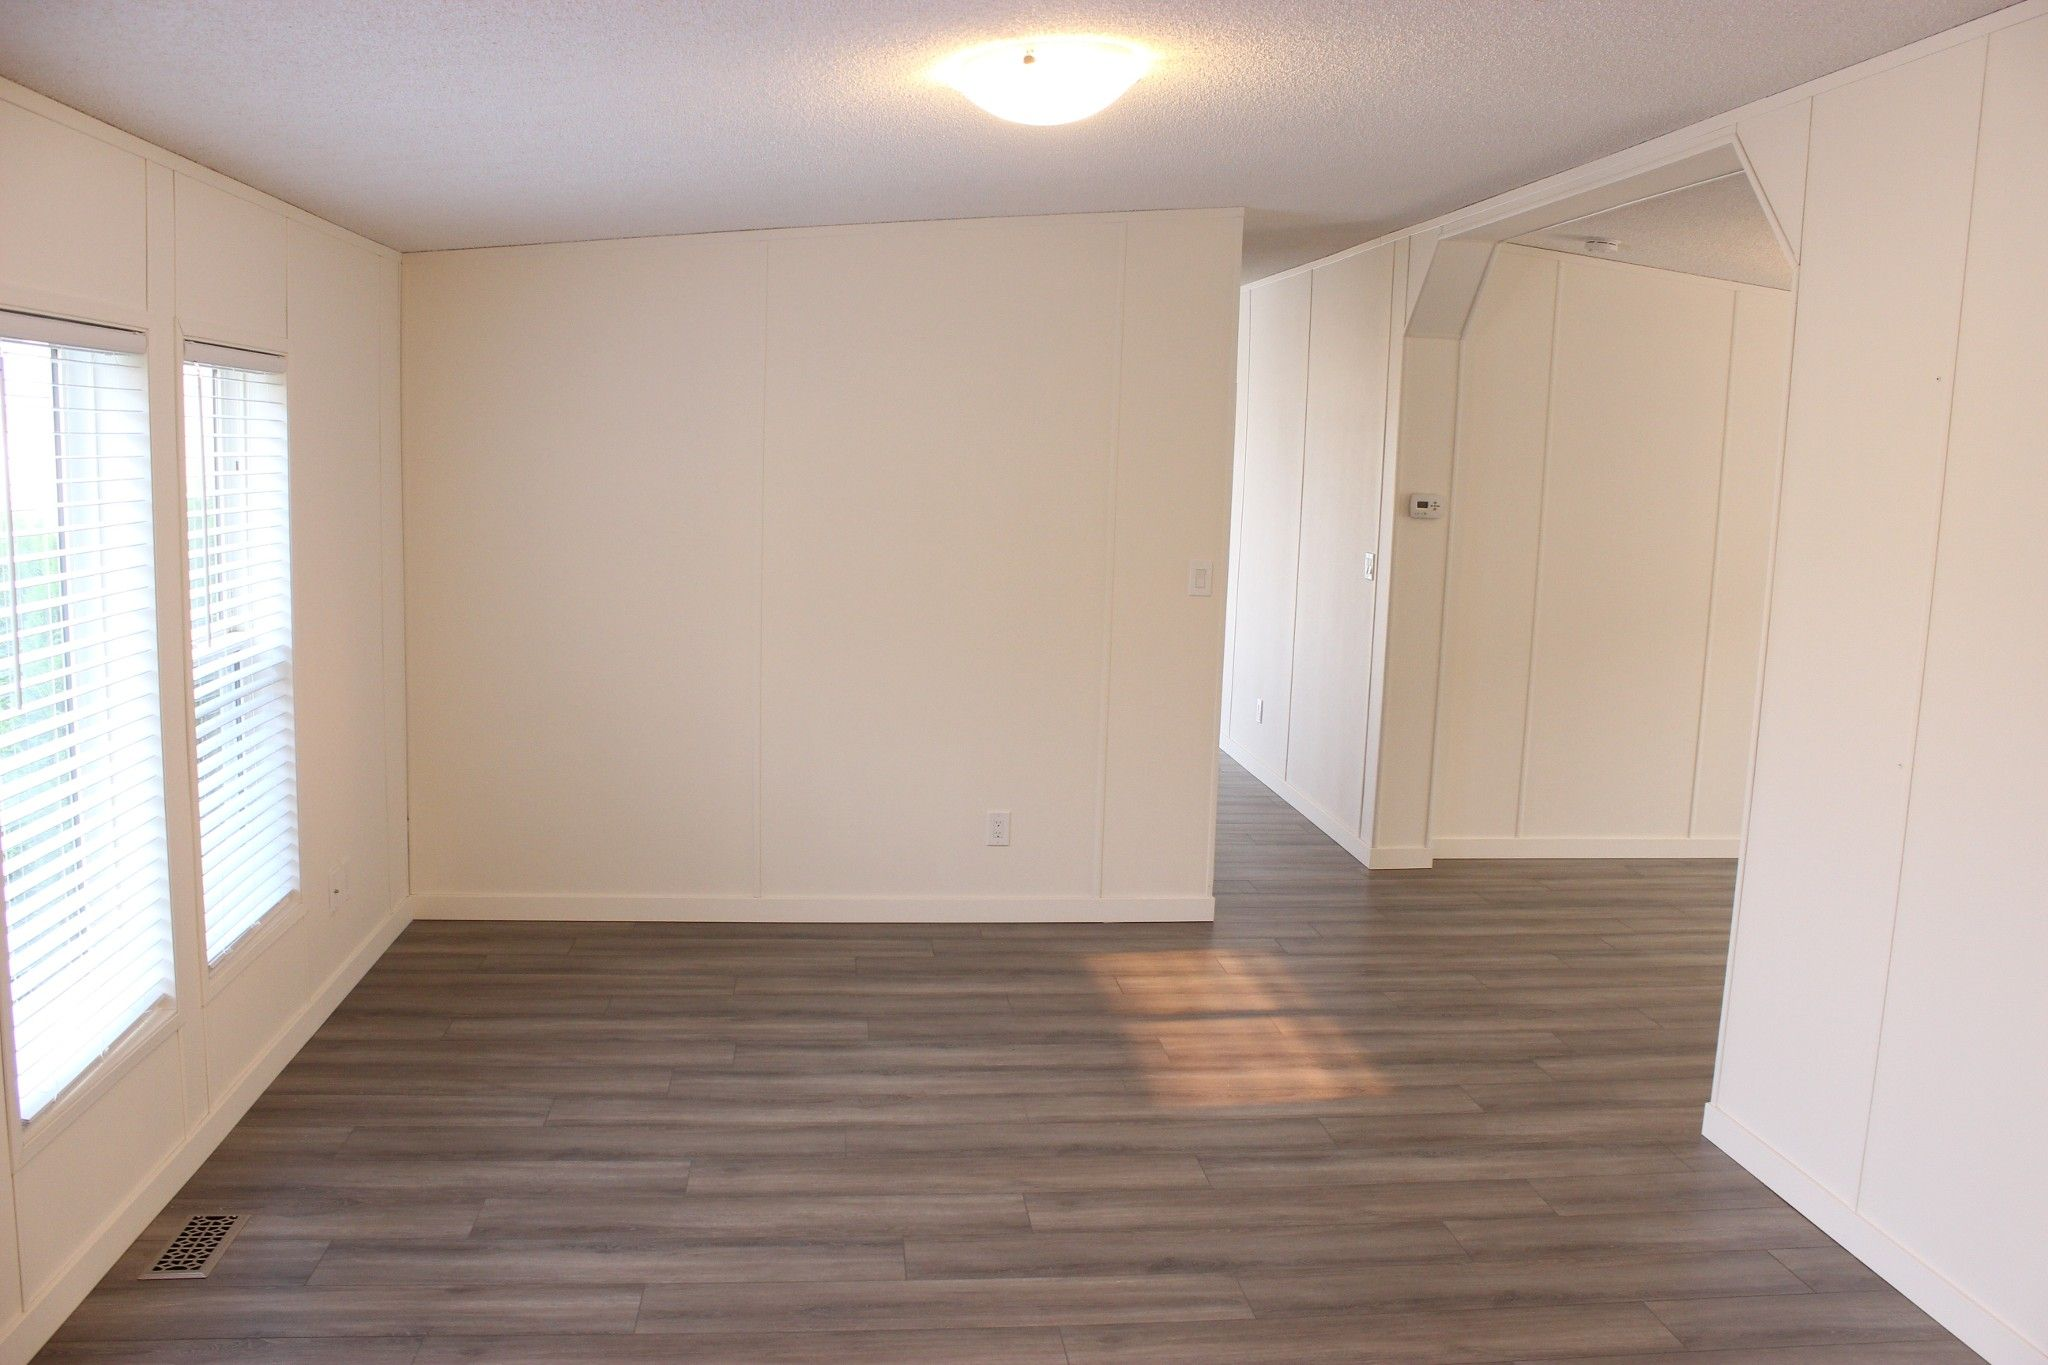 Photo 3: Photos: 22 3099 E Shuswap Road in Kamloops: South Thompson Valley Manufactured Home for sale : MLS®# 147827